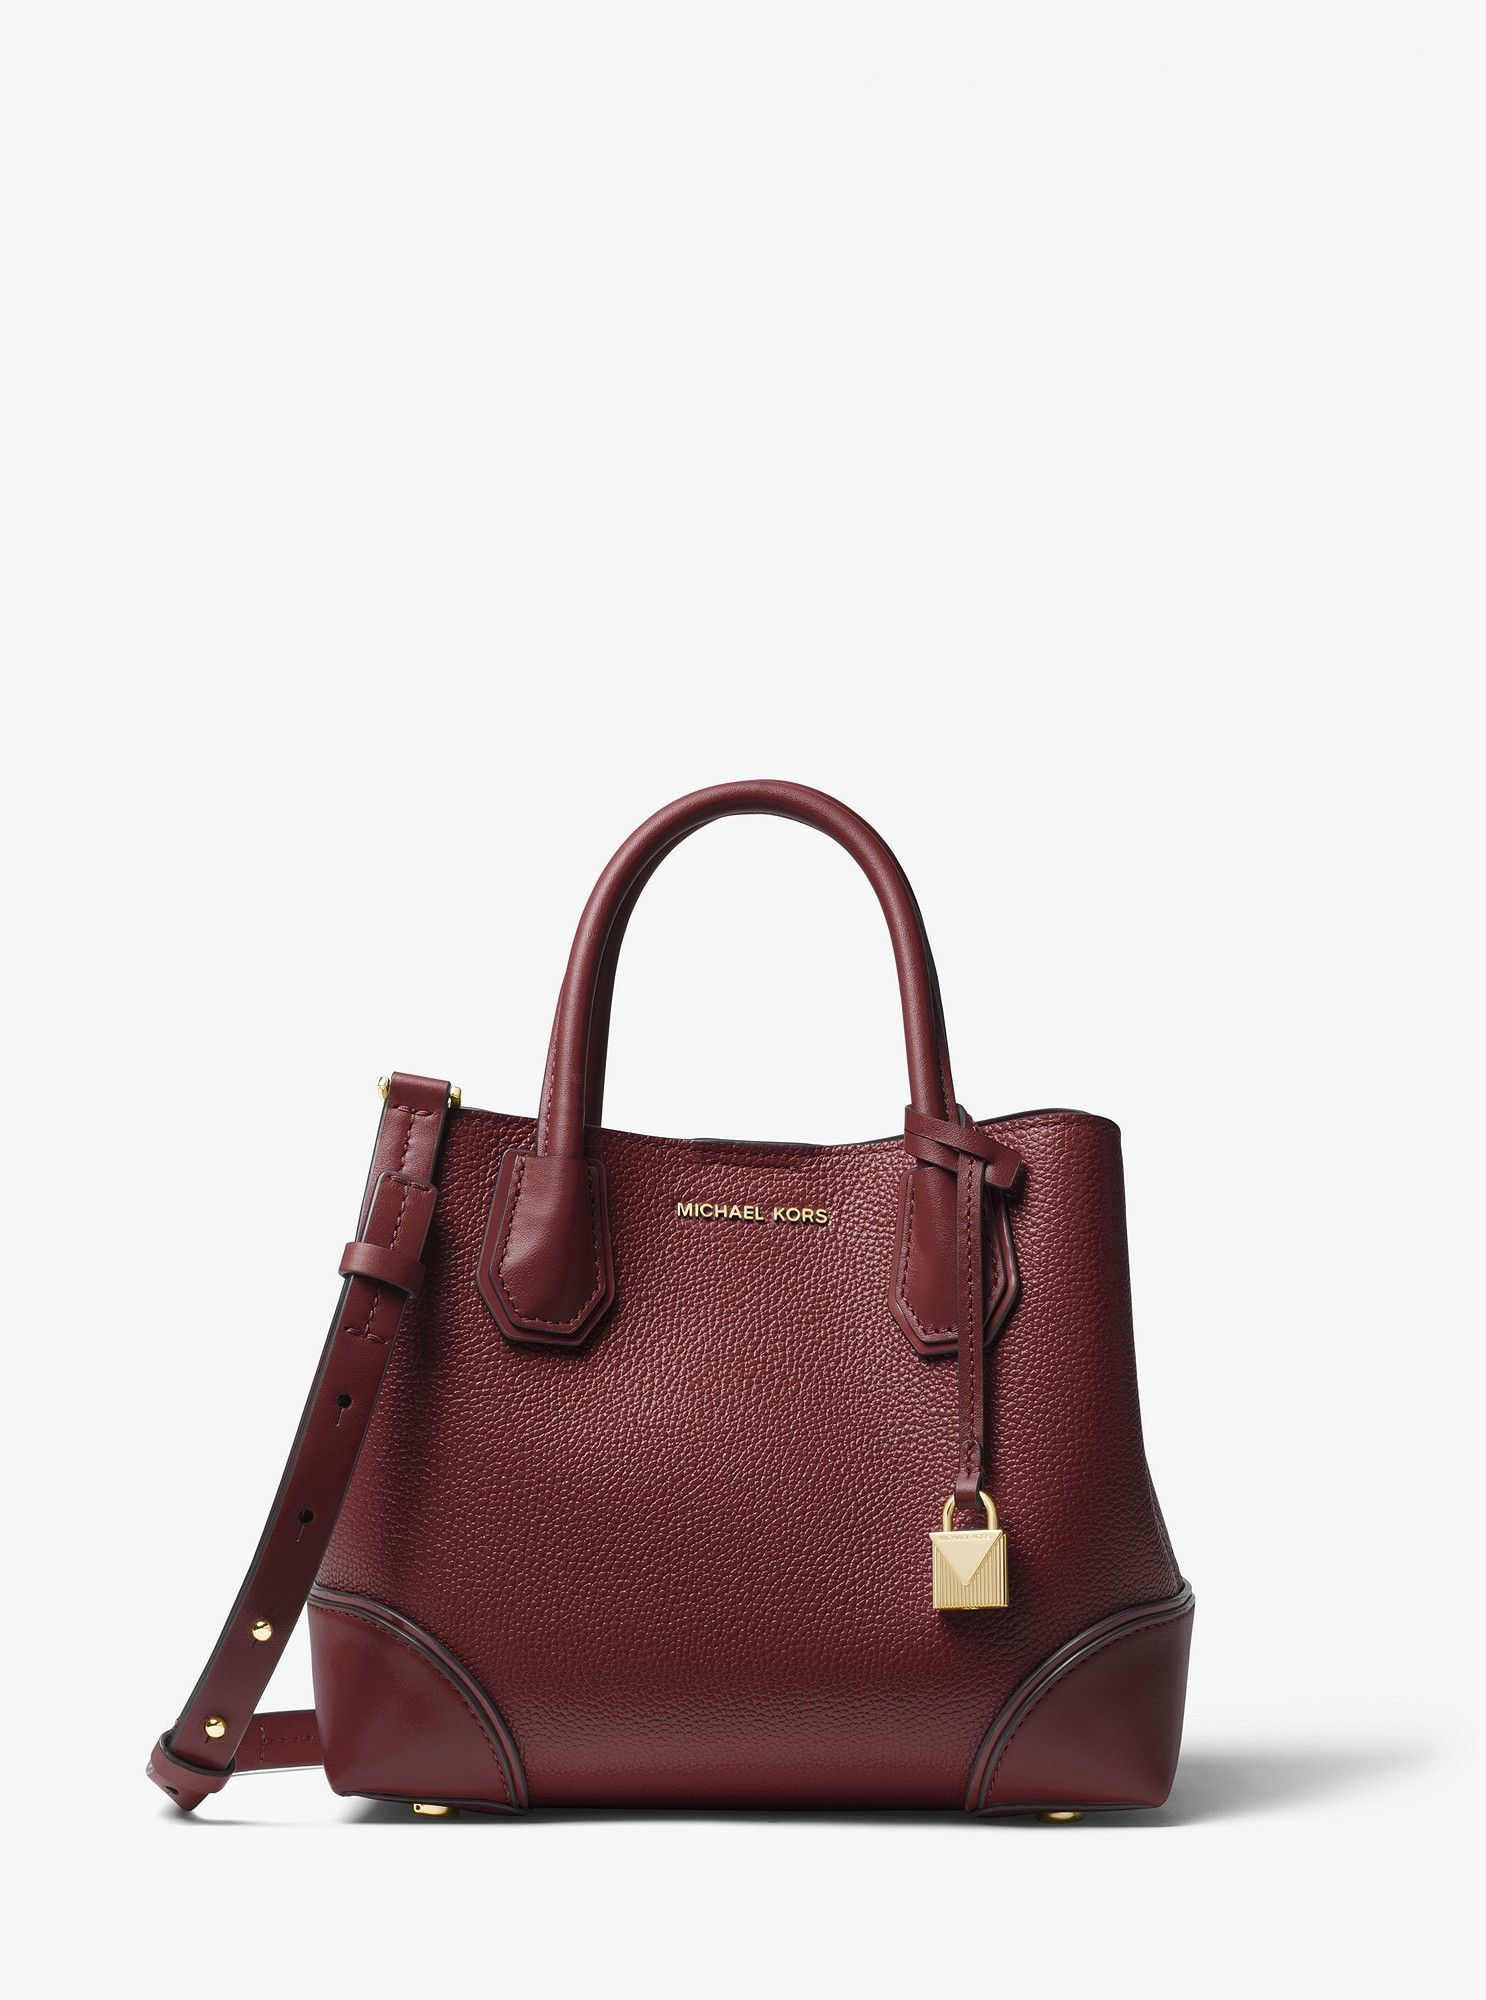 17f671b566250b Michael Kors Mercer Gallery Small Pebbled Leather Satchel - Oxblood ...